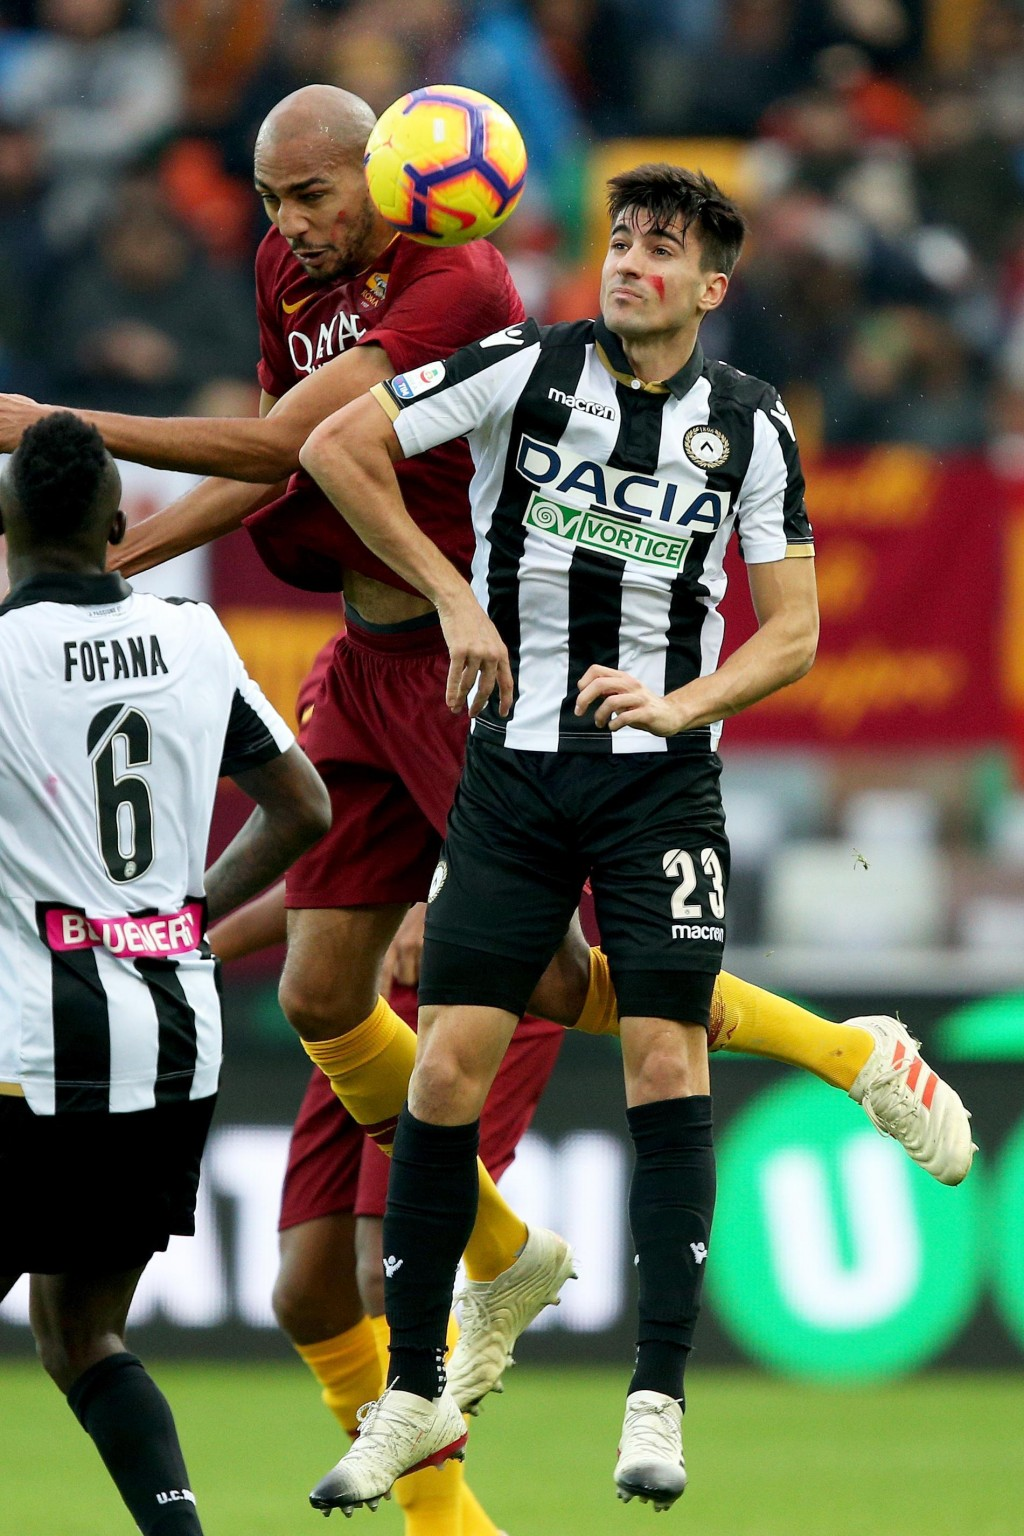 Udinese's Ignacio Pussetto, right, and Roma's Steven Nzonzi  jump for the ball during the Serie A soccer match between Udinese and Roma at the Friuli